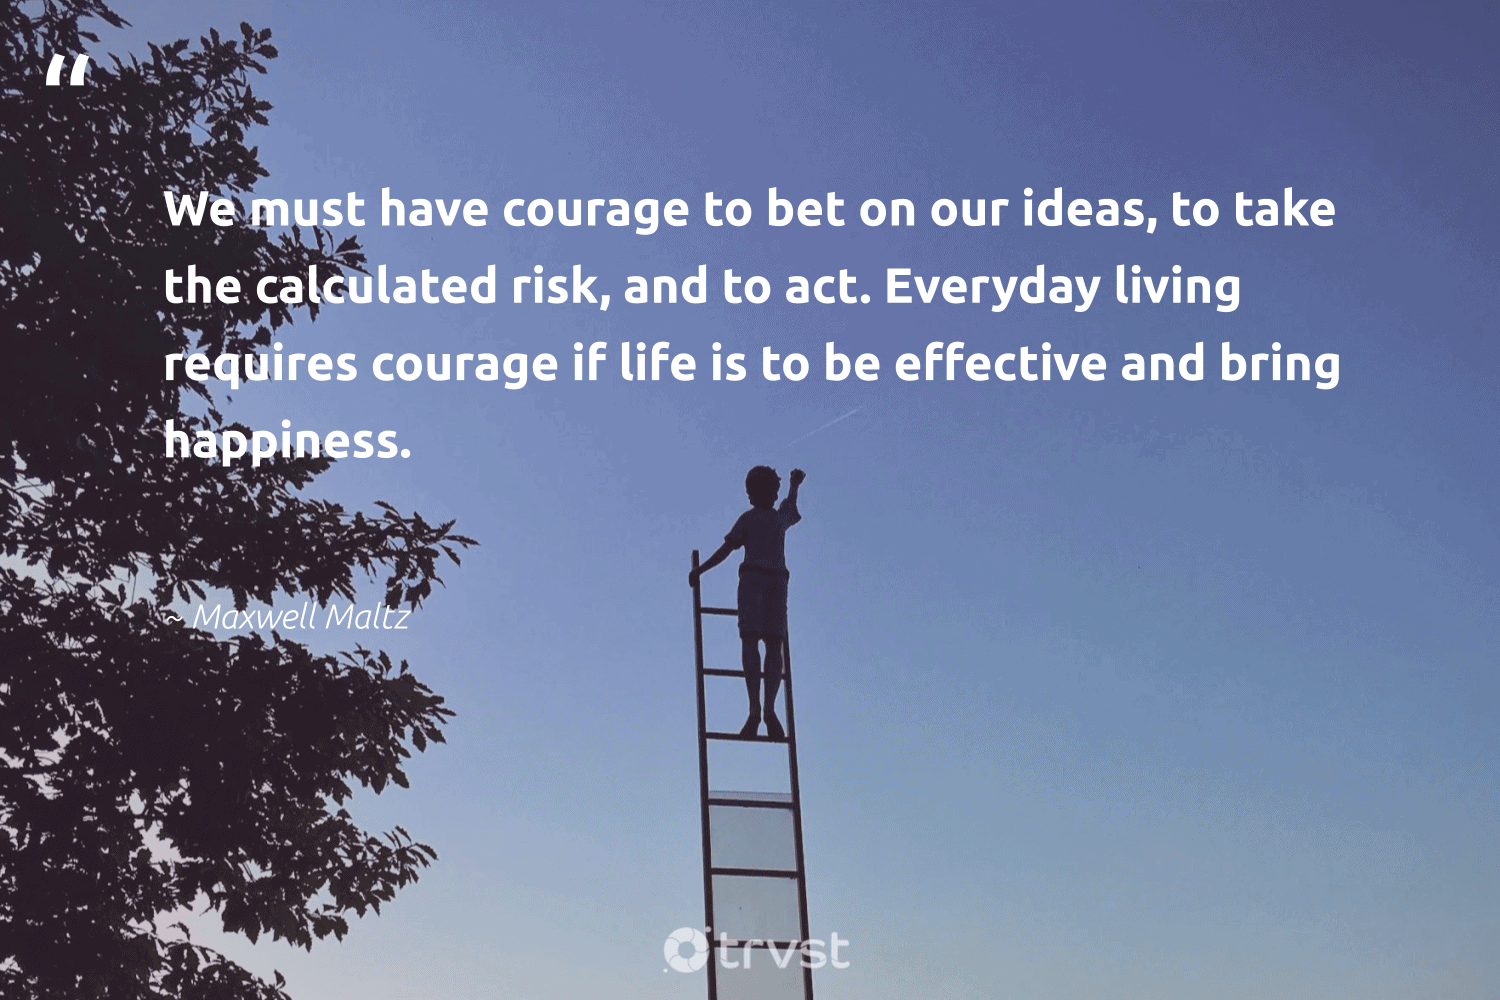 """""""We must have courage to bet on our ideas, to take the calculated risk, and to act. Everyday living requires courage if life is to be effective and bring happiness.""""  - Maxwell Maltz #trvst #quotes #happiness #togetherwecan #dogood #begreat #impact #changemakers #bethechange #nevergiveup #takeaction #health"""